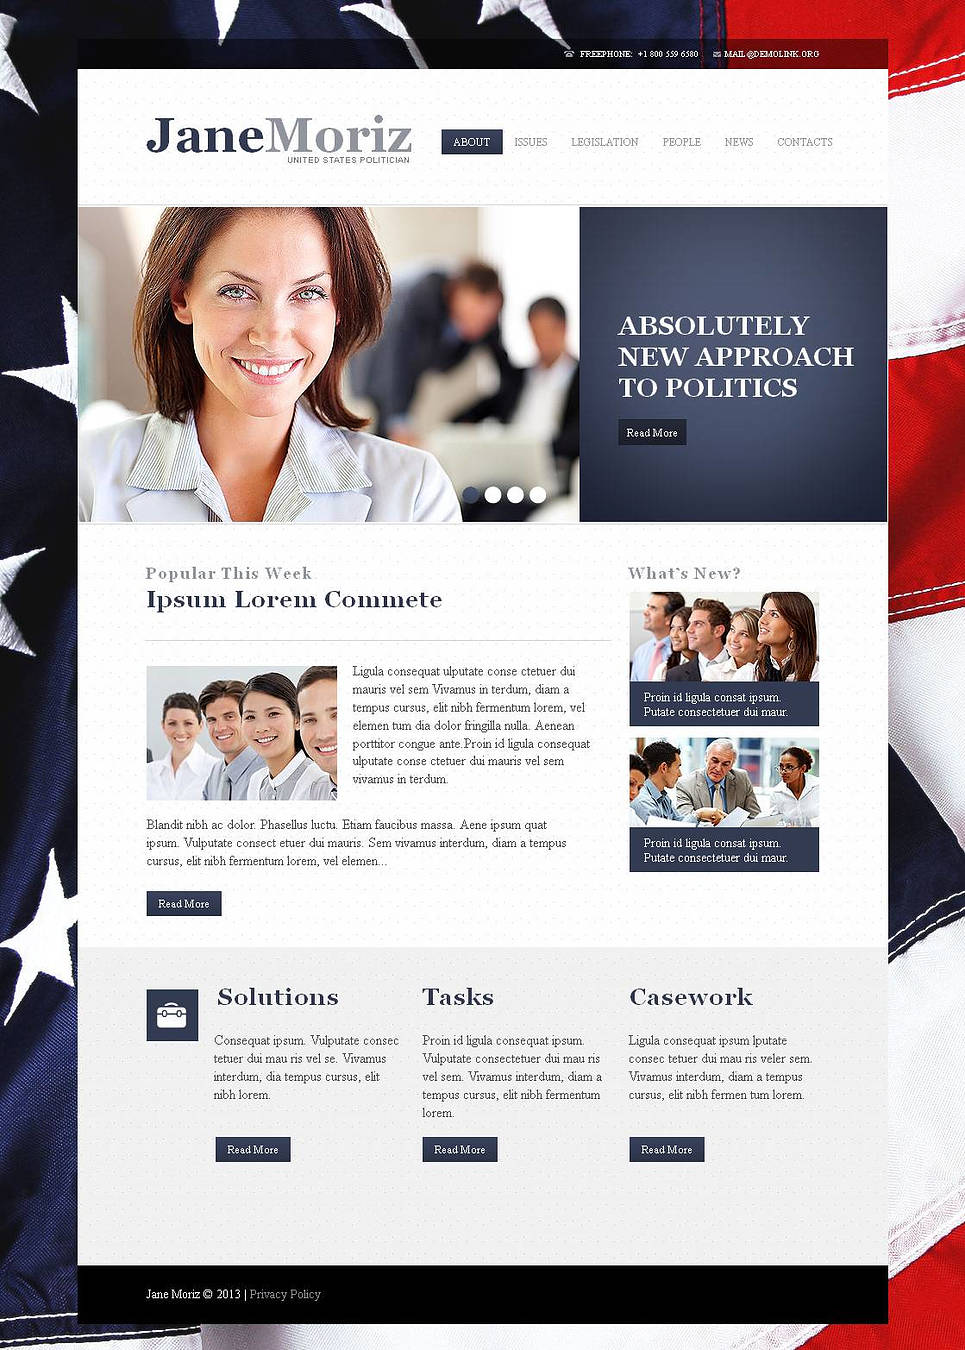 Politics Website Template with American Flag on the Background - image